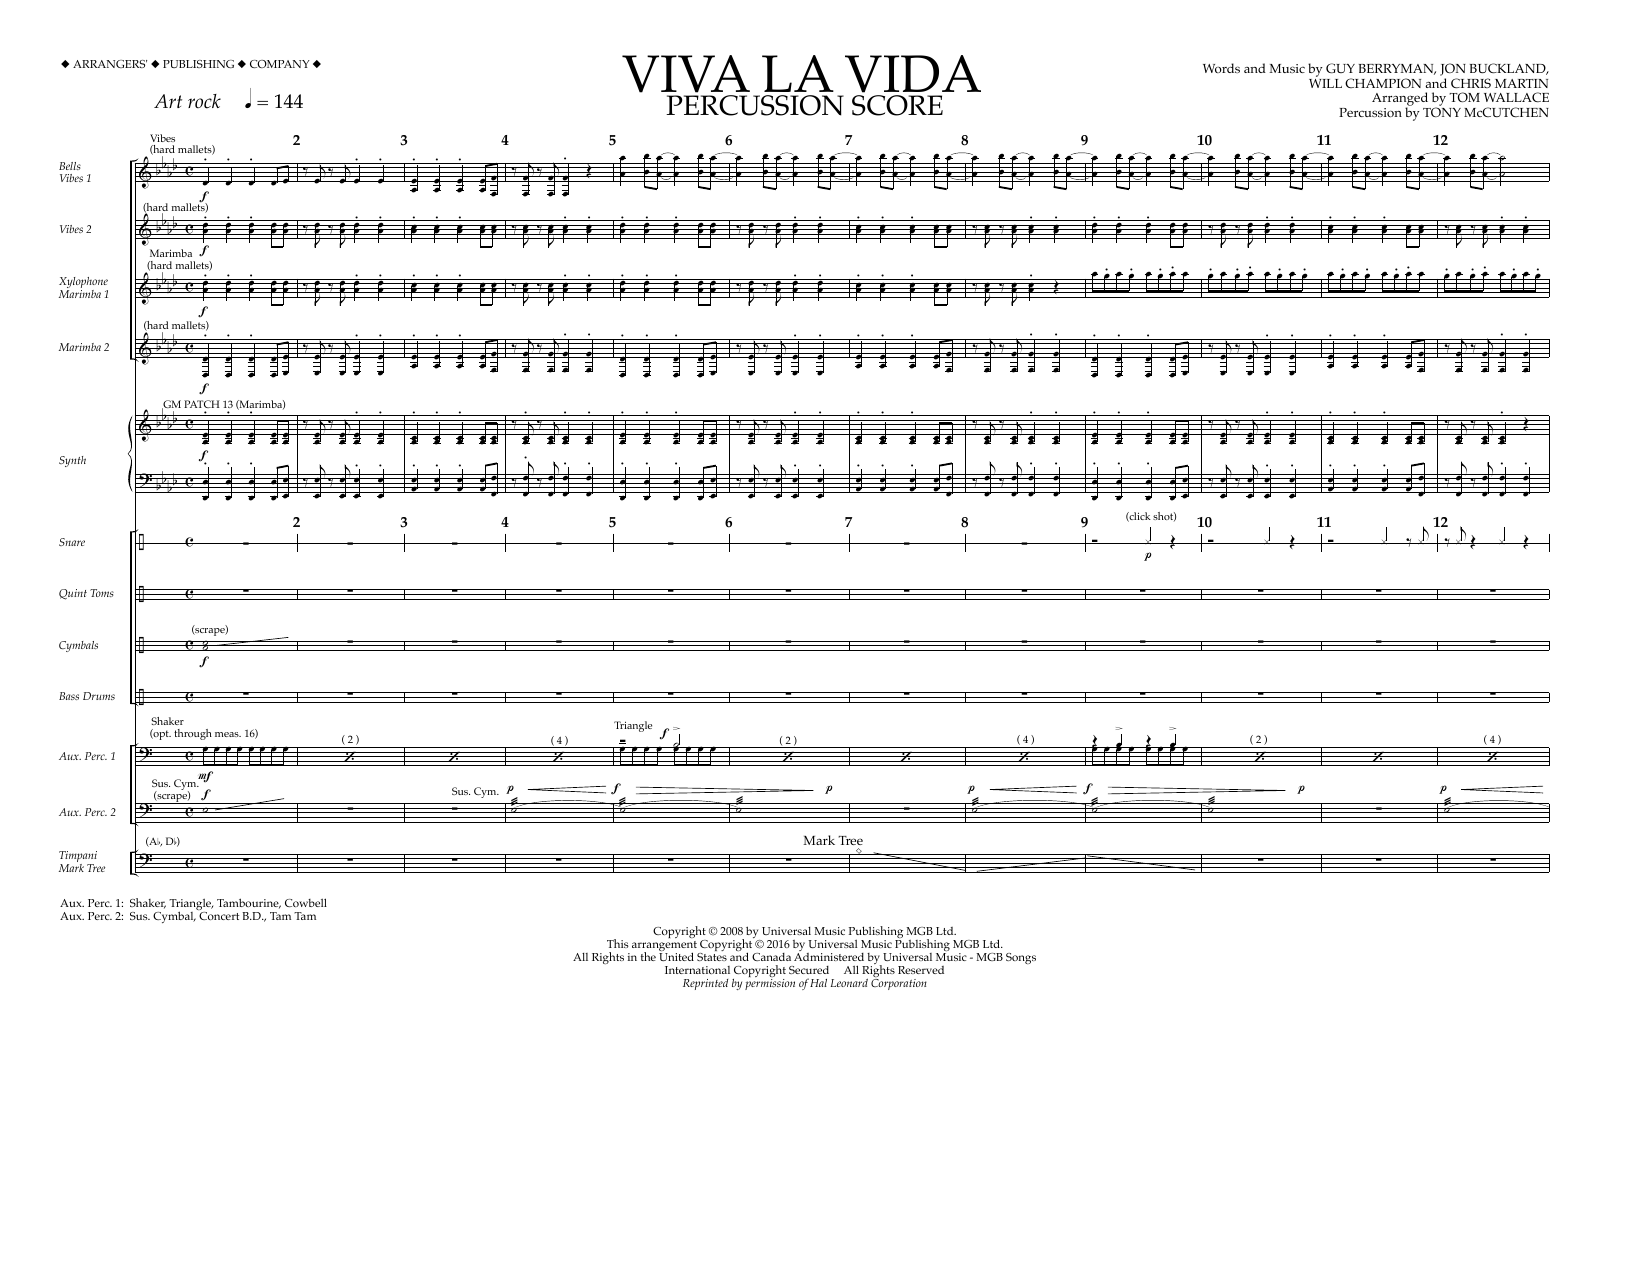 Coldplay - Viva La Vida - Percussion Score